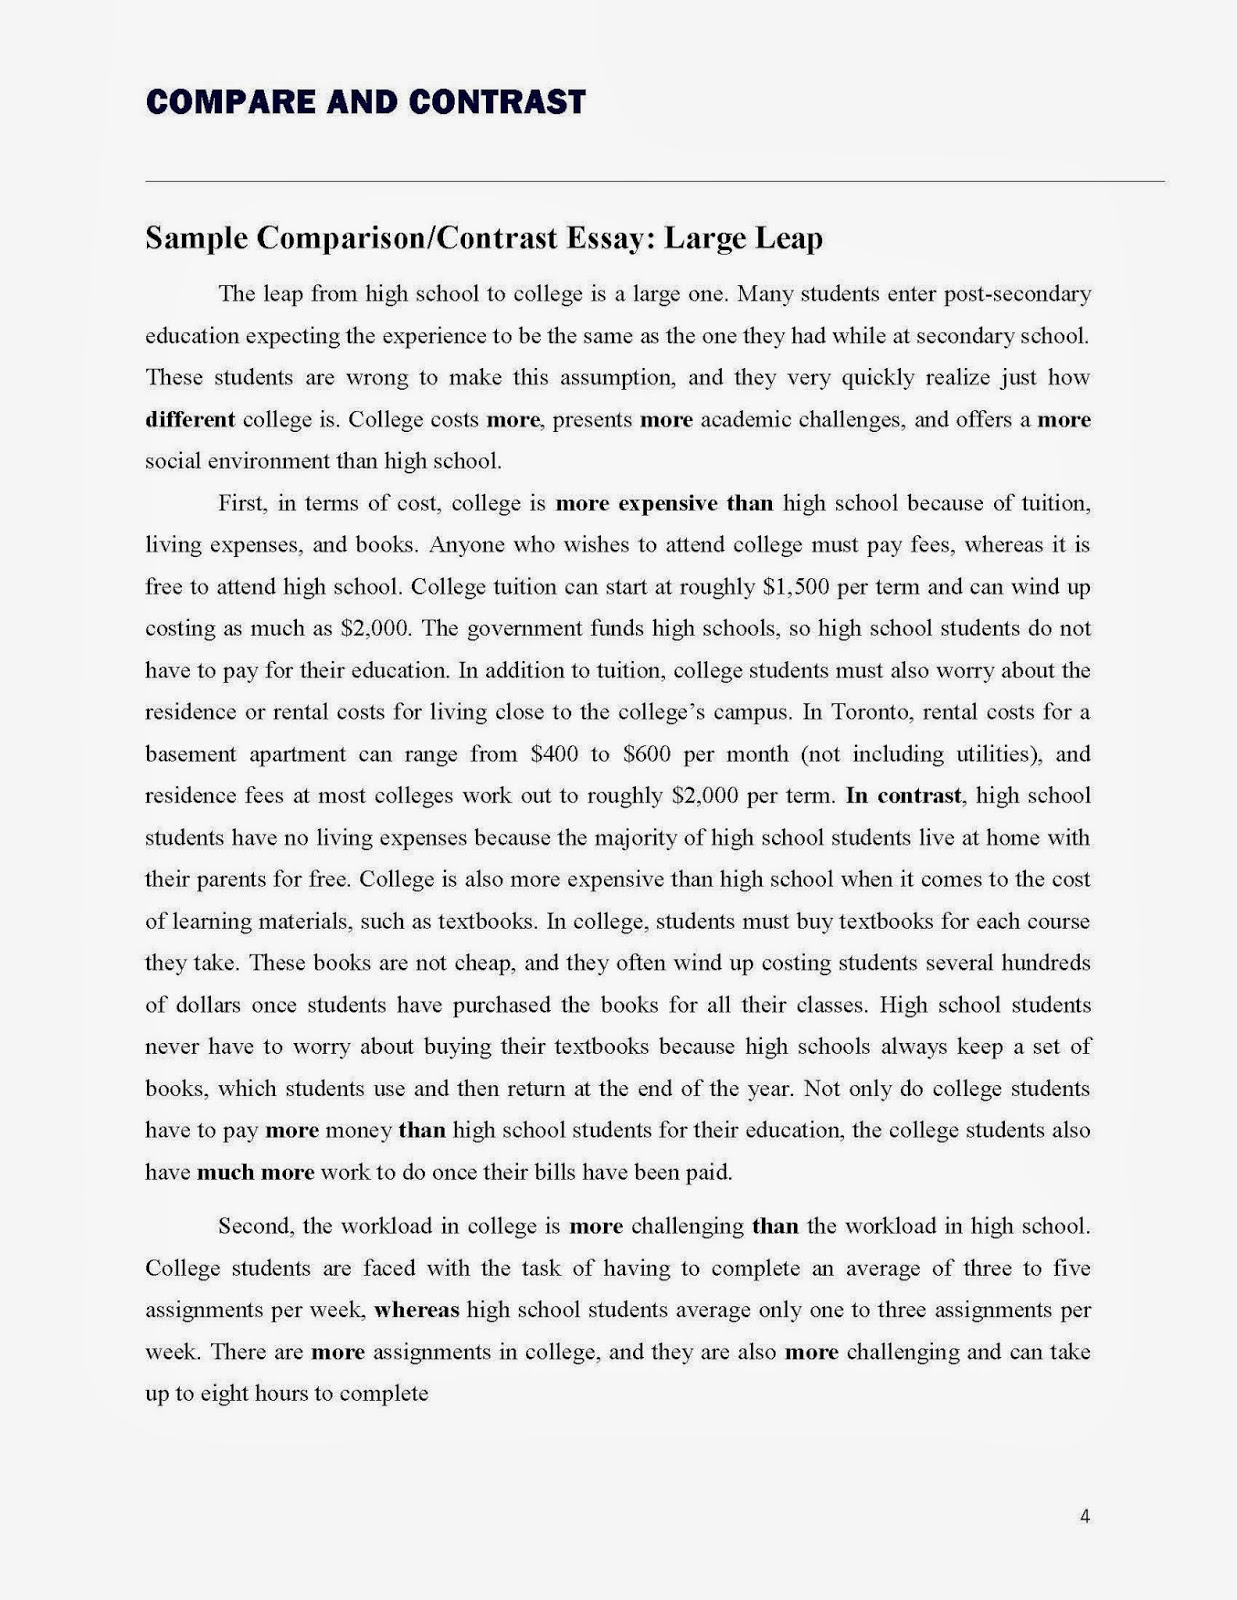 Principles of scientific management essay